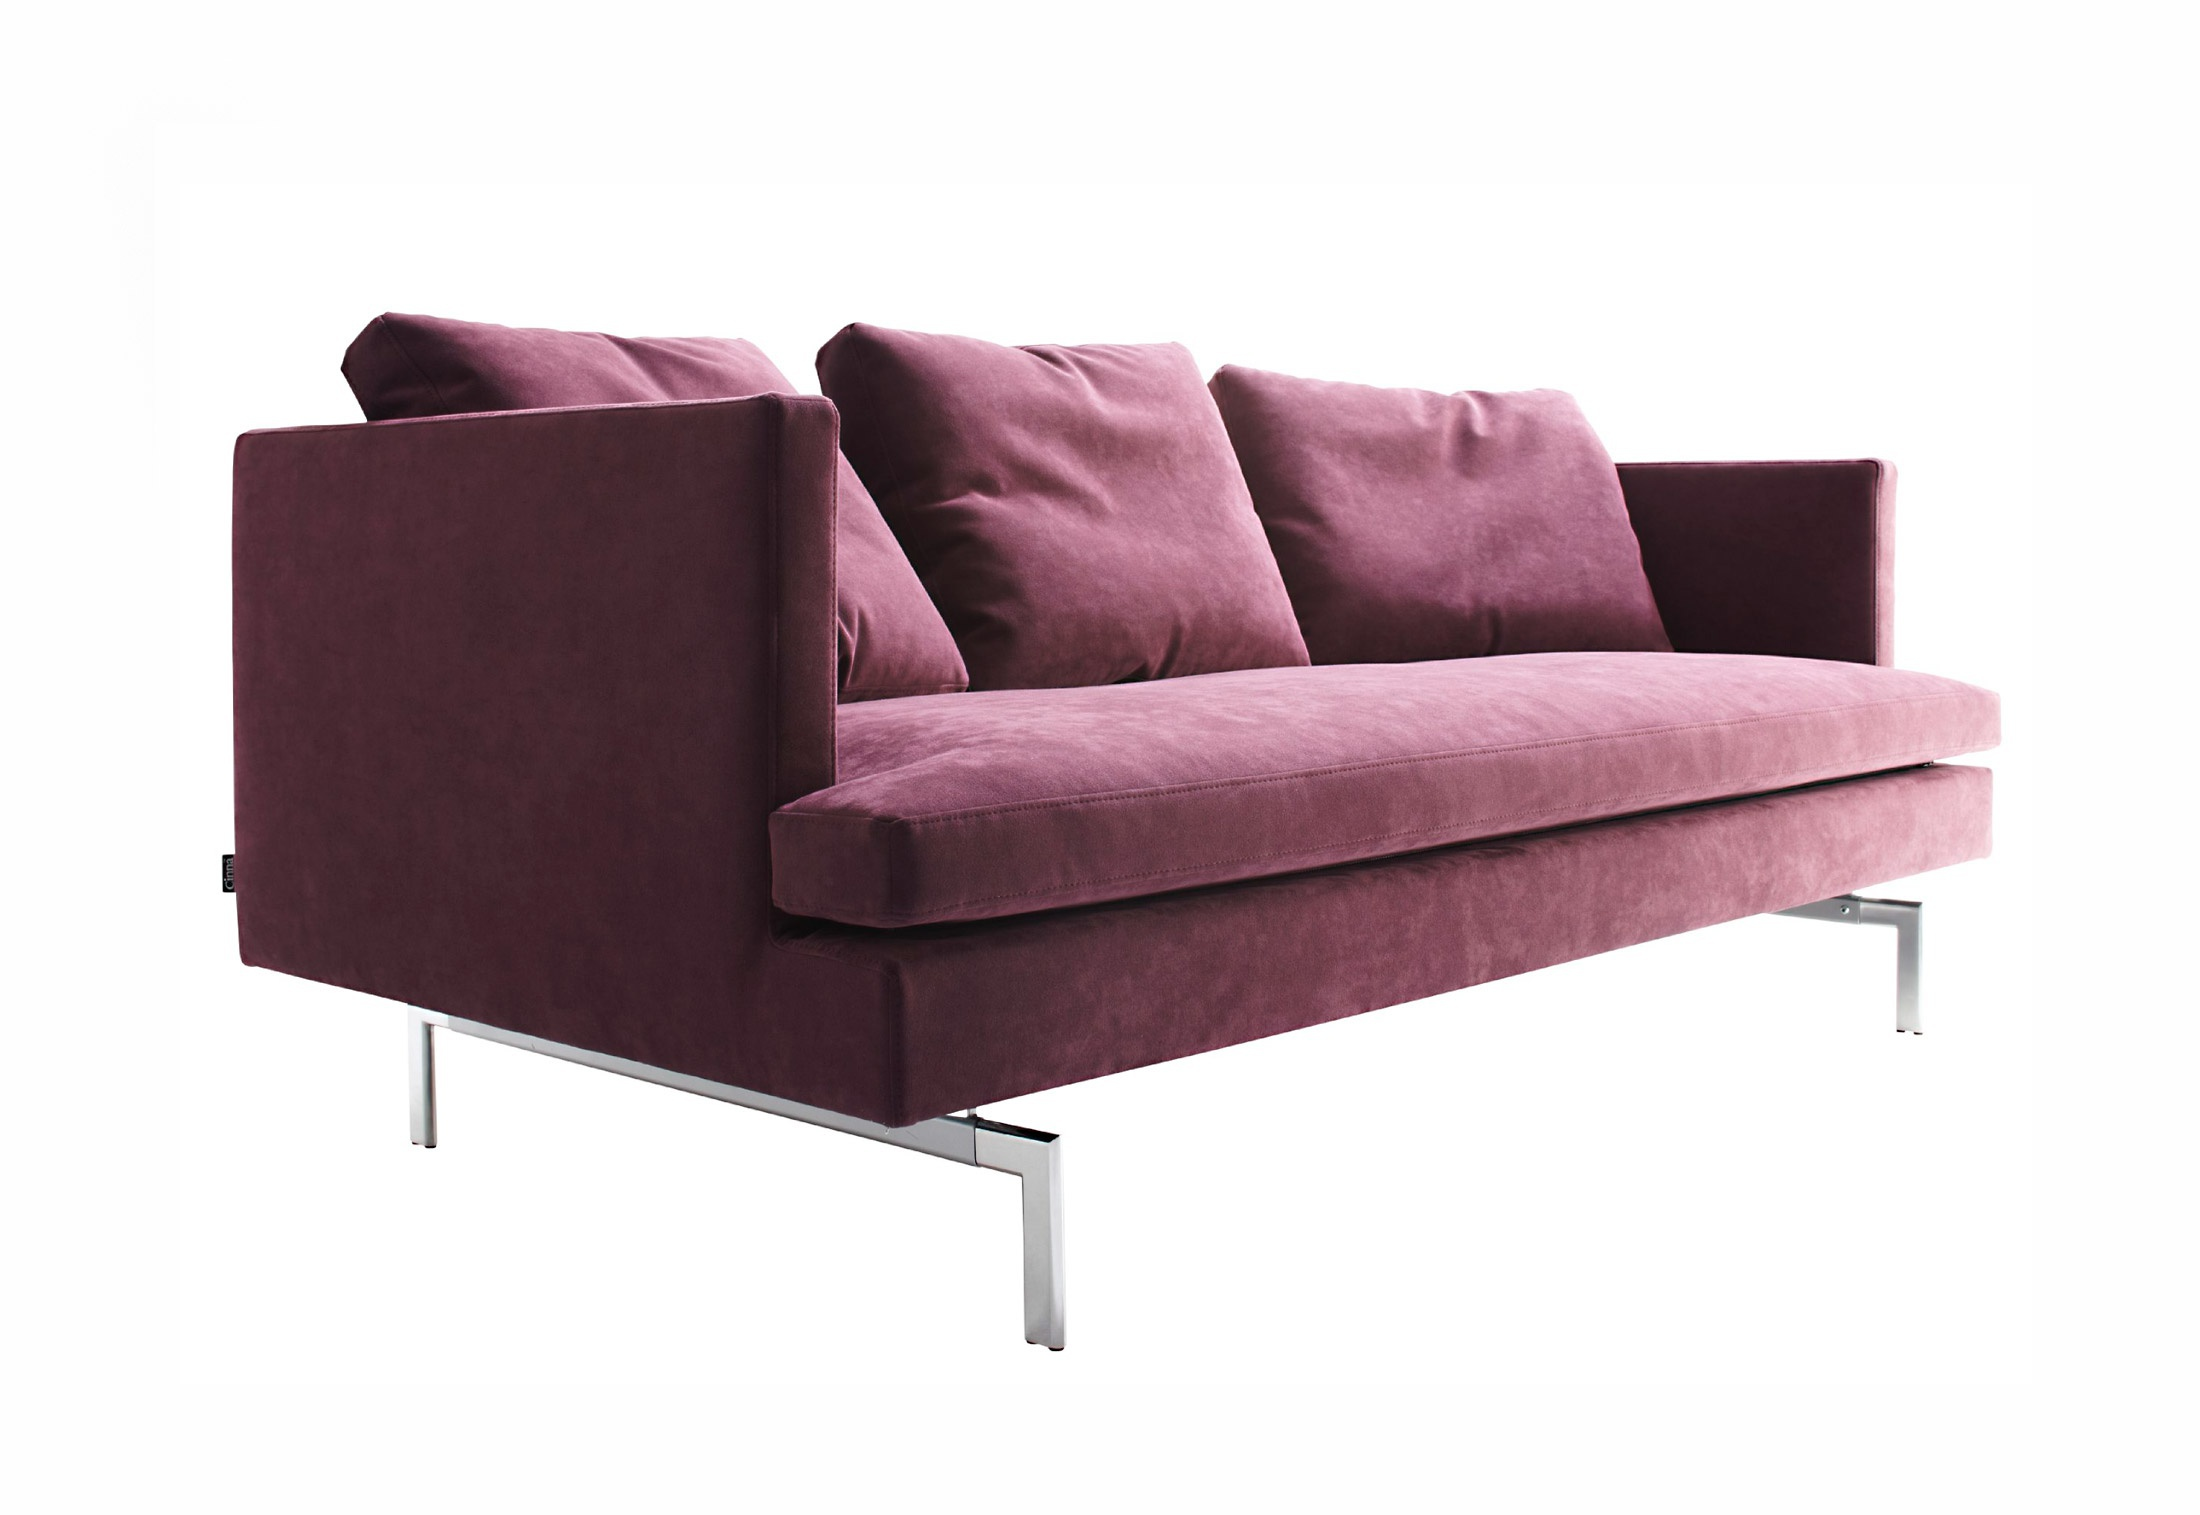 Gallery STRICTO SENSU Sofa Dwellstudio STRICTO SENSU Sofa Dwellstudio ...